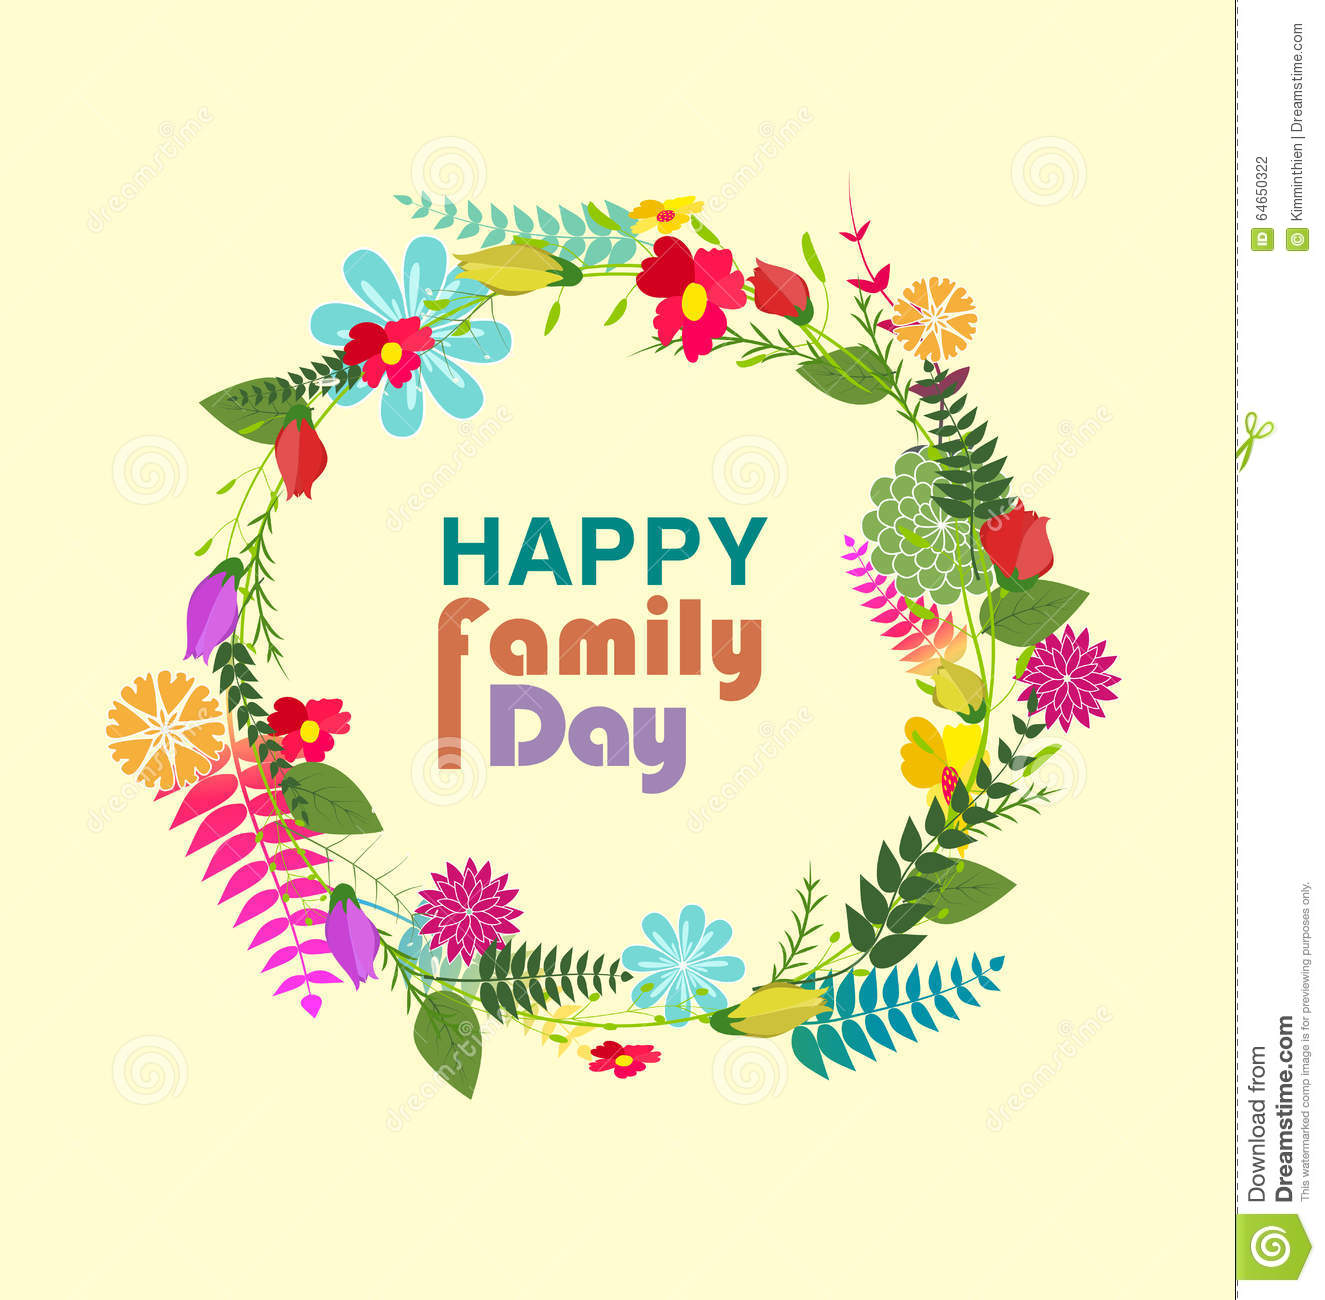 Happy Family Day Stock Vector - Image: 64650322